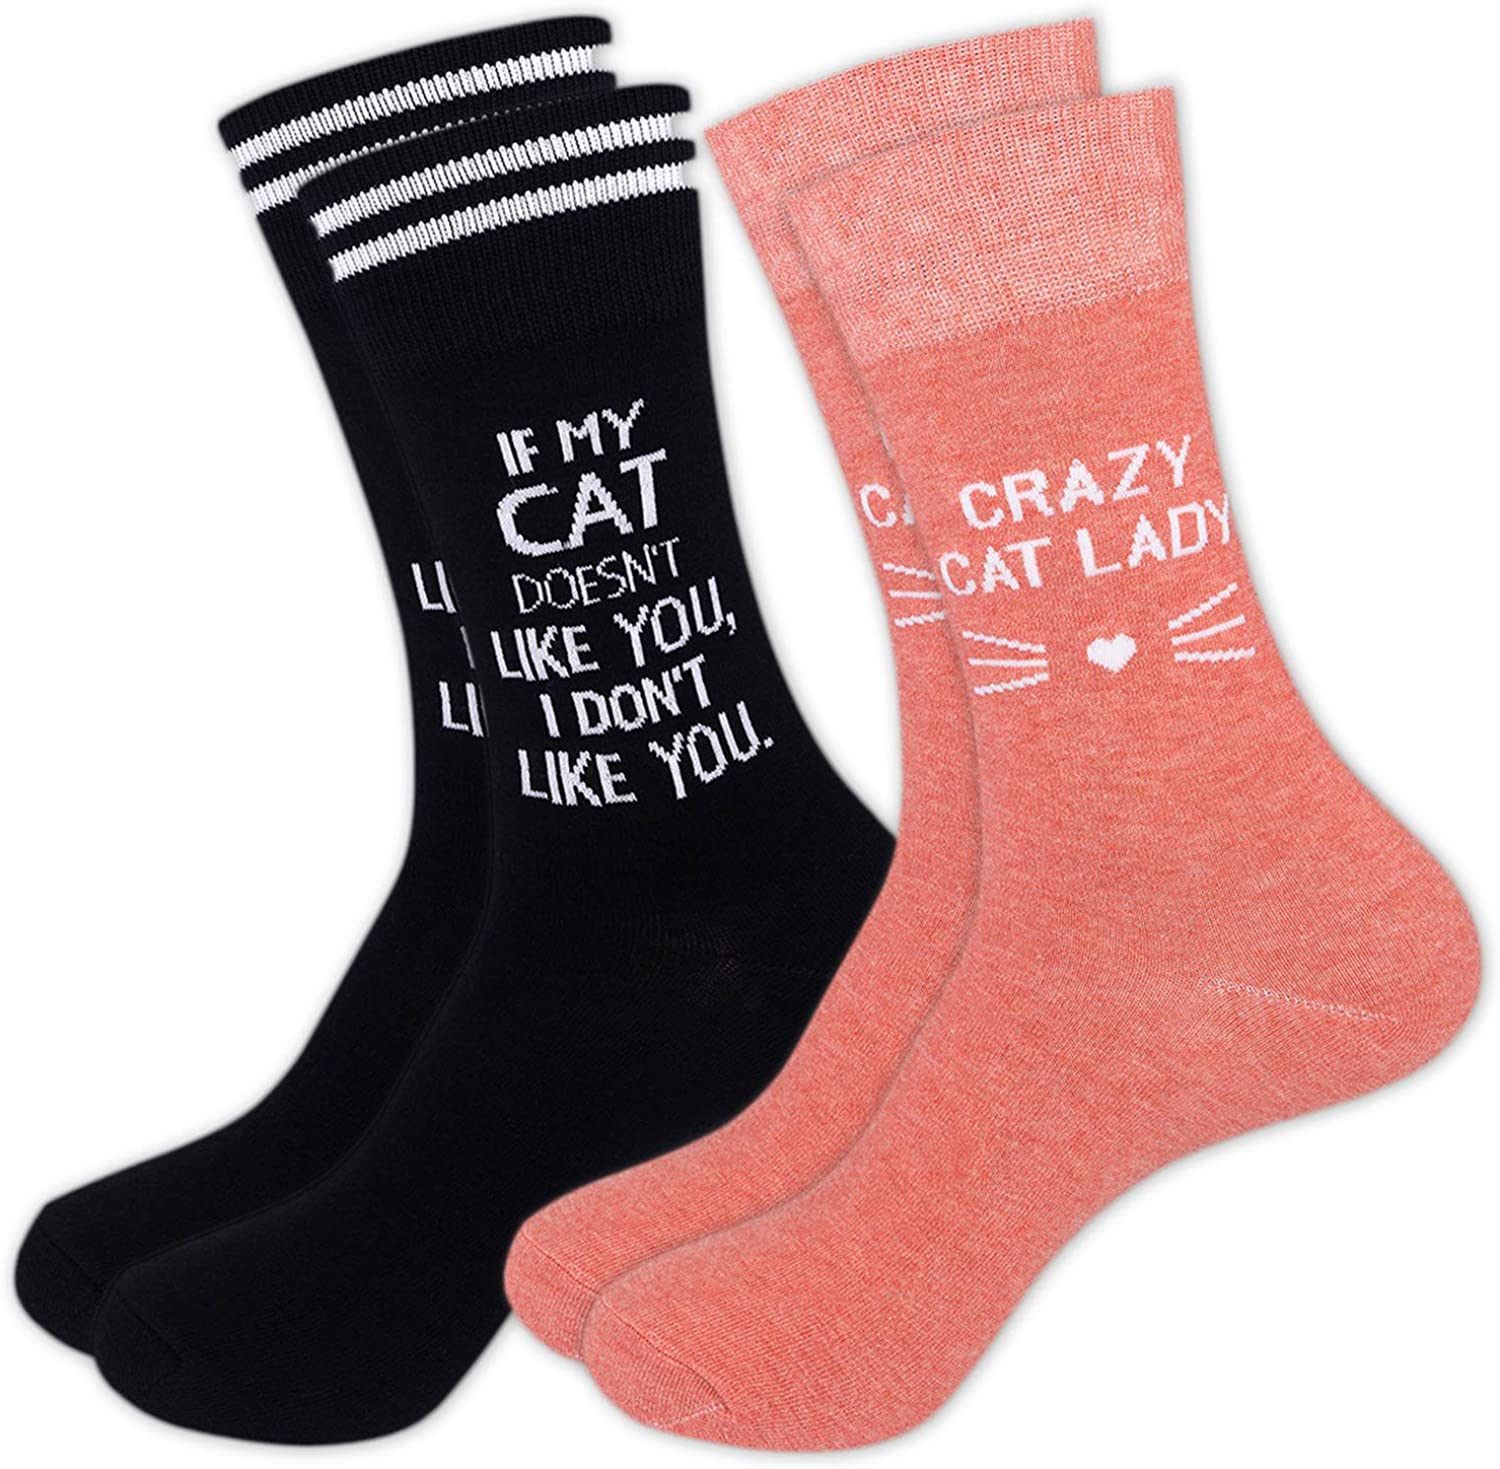 Funatic 2 Pairs of Crazy Cat Lady Socks in Pink and Black | One Size Fits Most Novelty Gift for Animal Lover, Birthday Present, Bestie and Friends